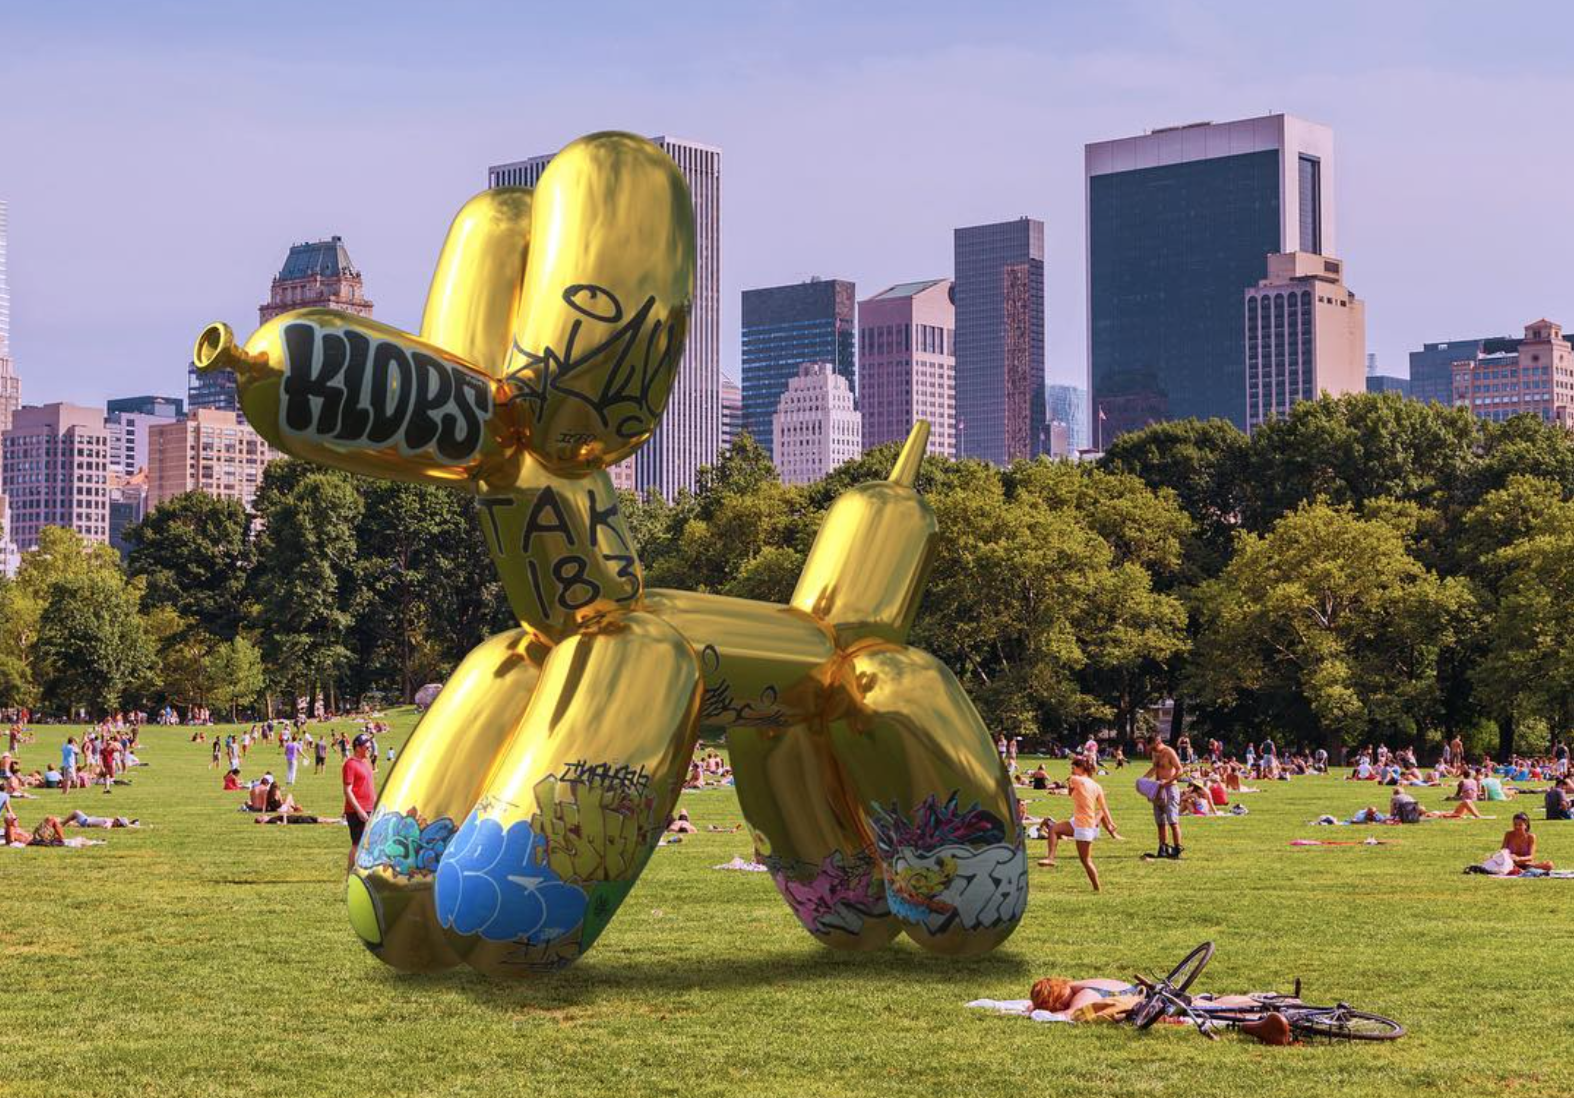 Jeff Koons' augmented reality Snapchat artwork gets 'vandalized'